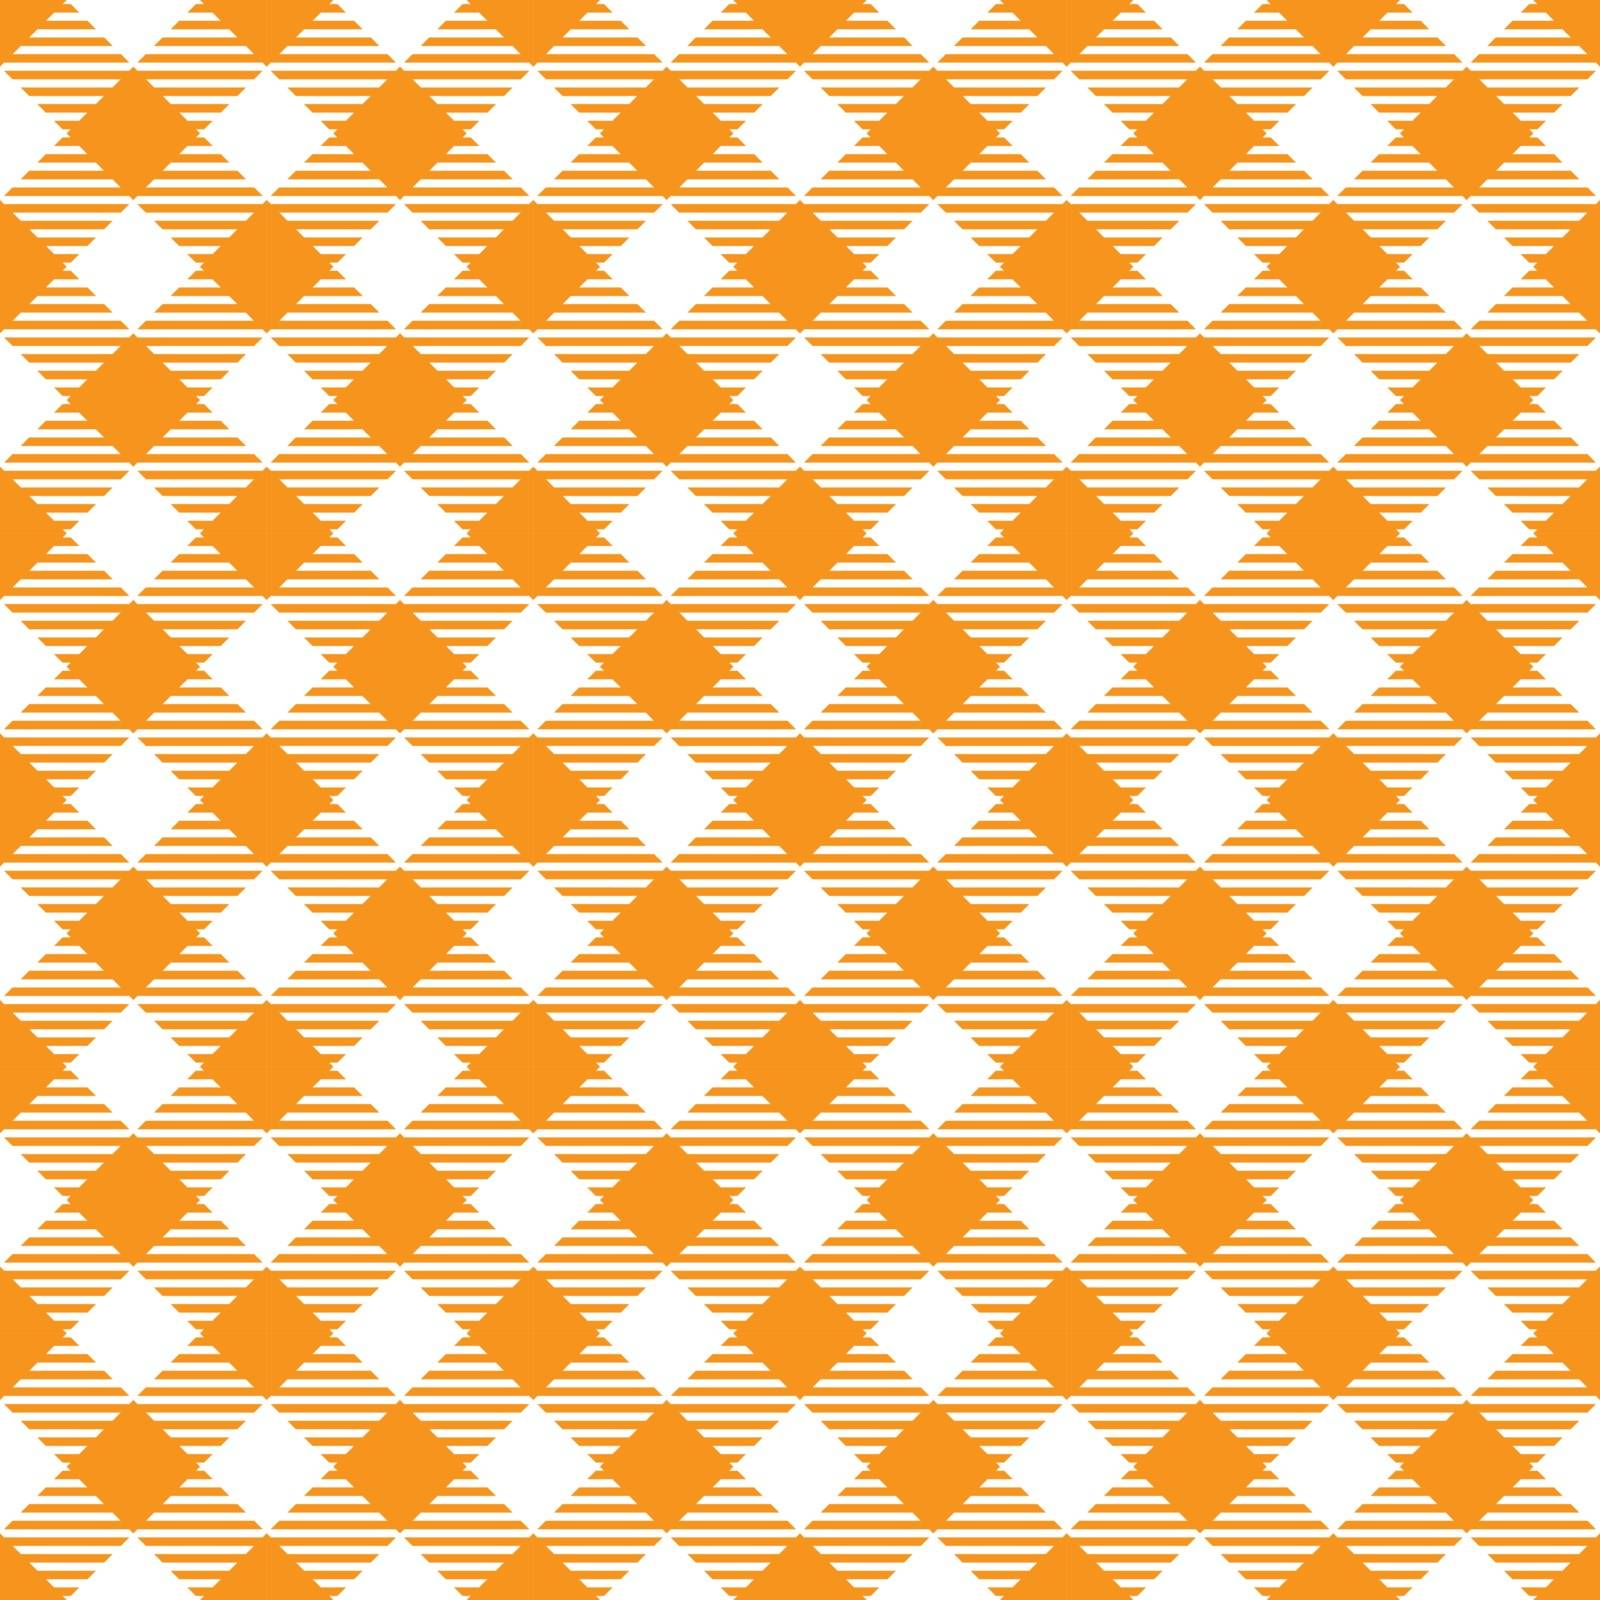 Seamless Yellow White Traditional Gingham Pattern Fabric Texture for Design